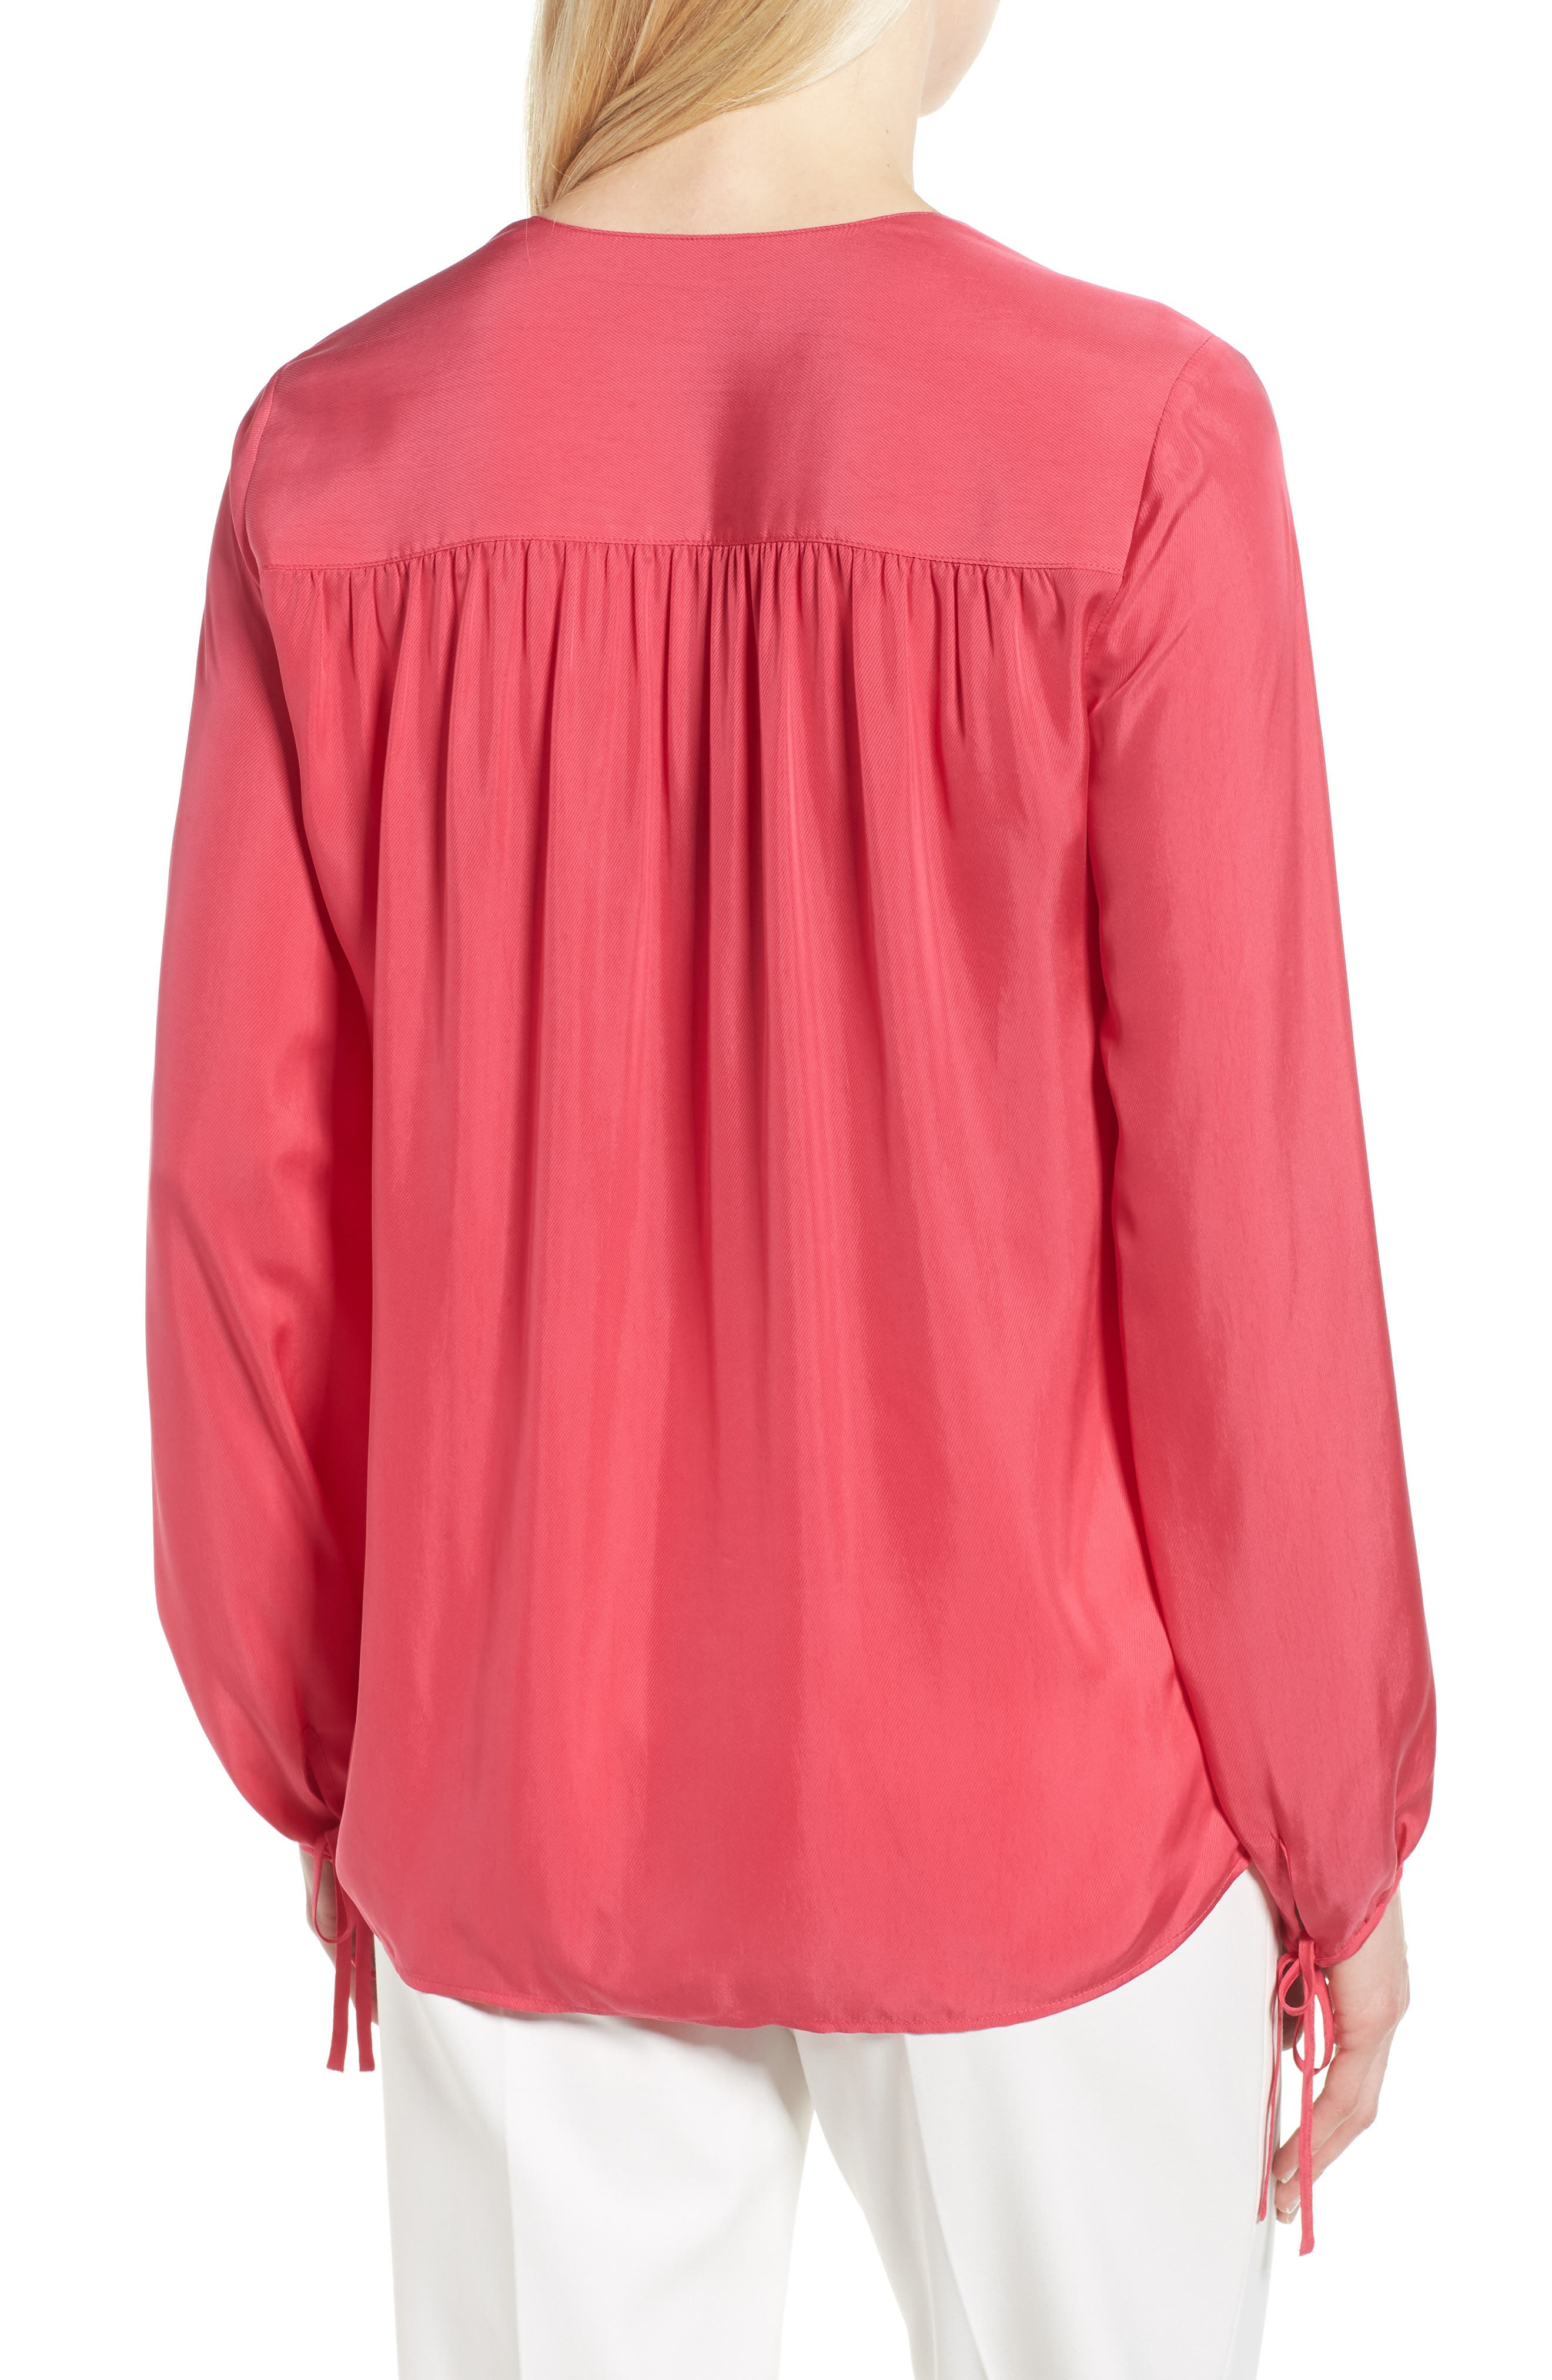 Rosalia Blouse,                             Alternate thumbnail 2, color,